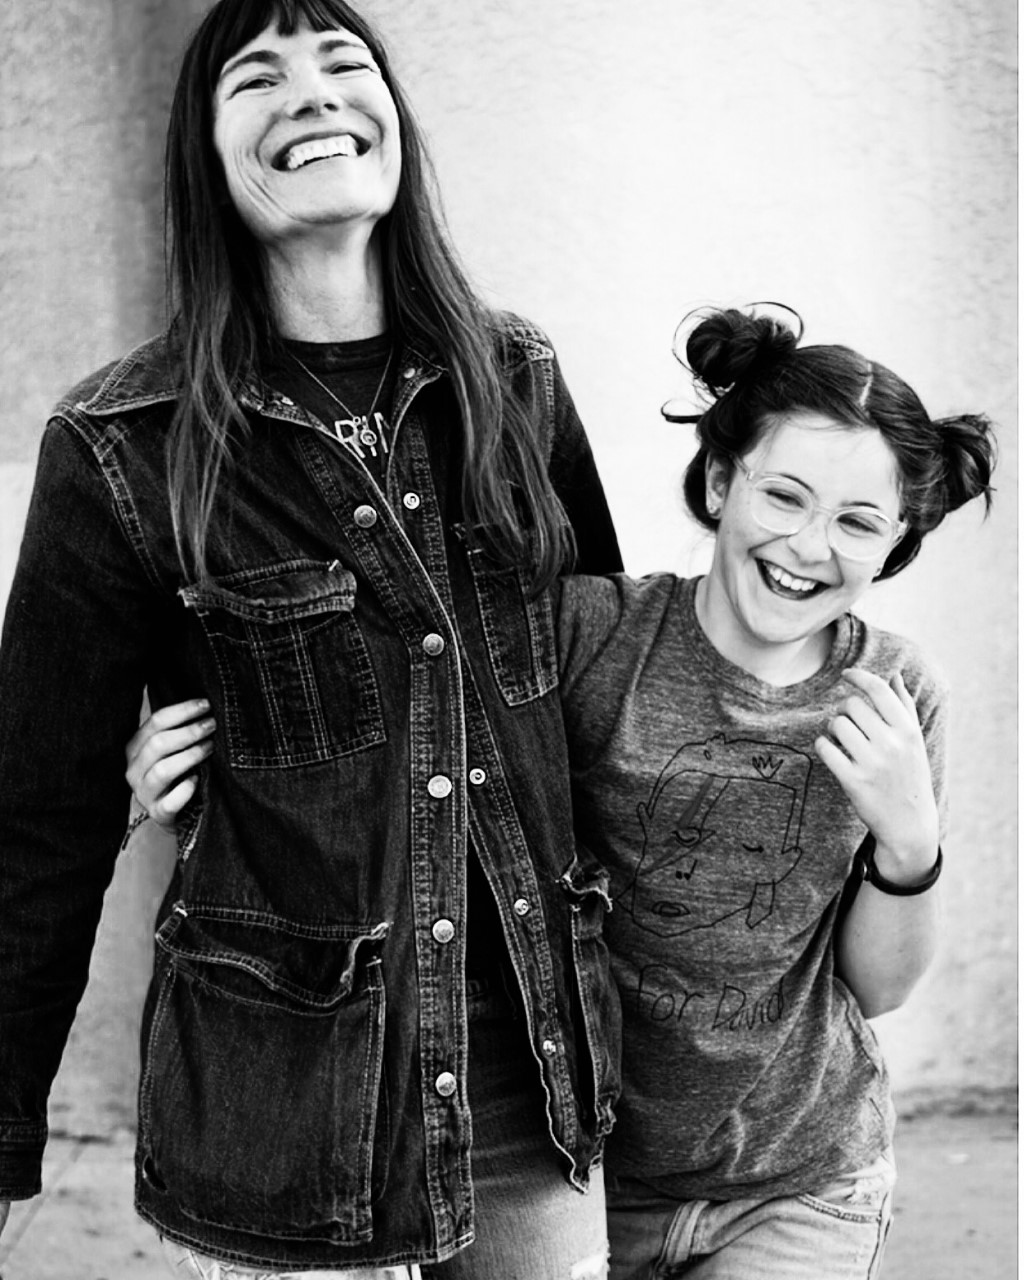 A black-and-white photo of a light-skinned mother and daughter, who have their arms around one another and are laughing joyfully.